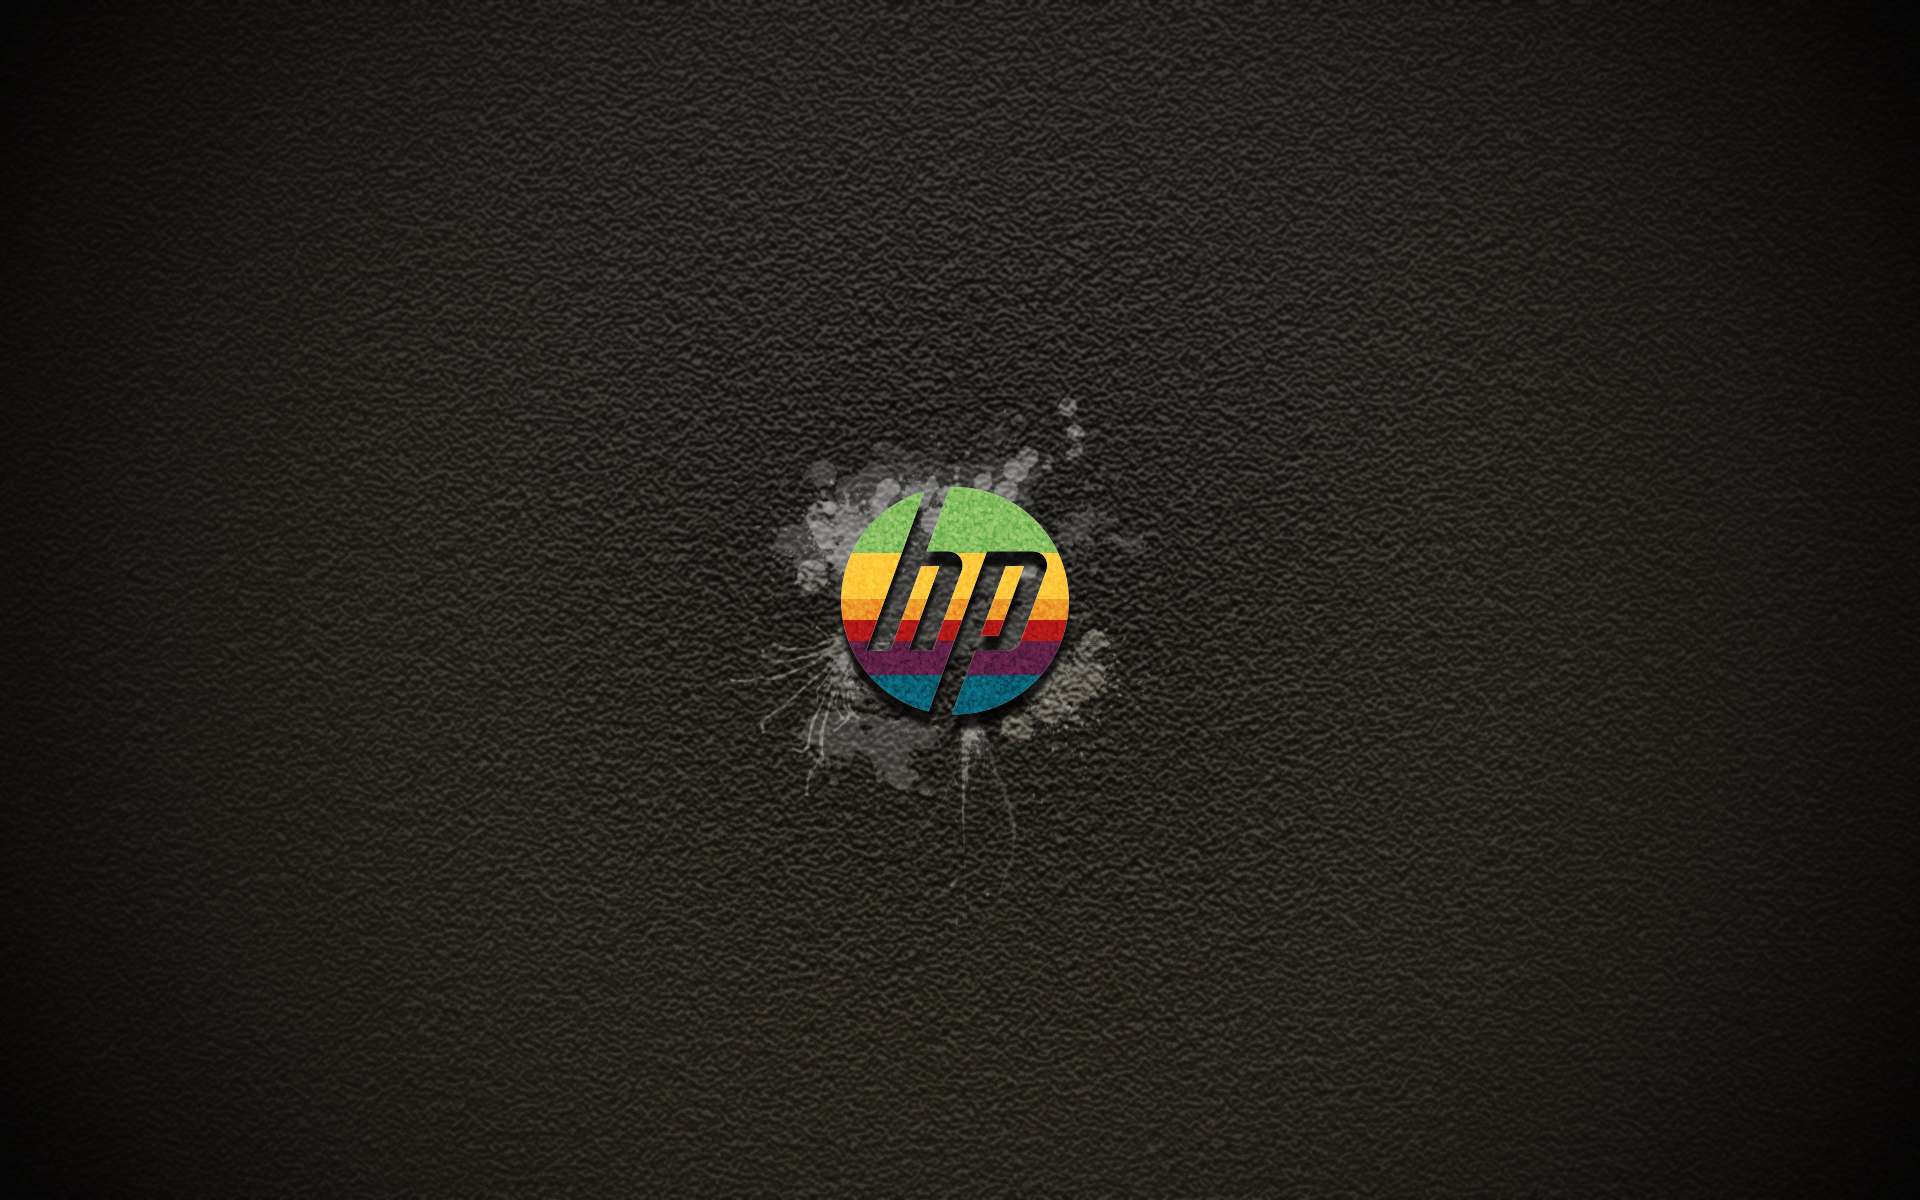 47+] 3D HP Logo Wallpaper on WallpaperSafari